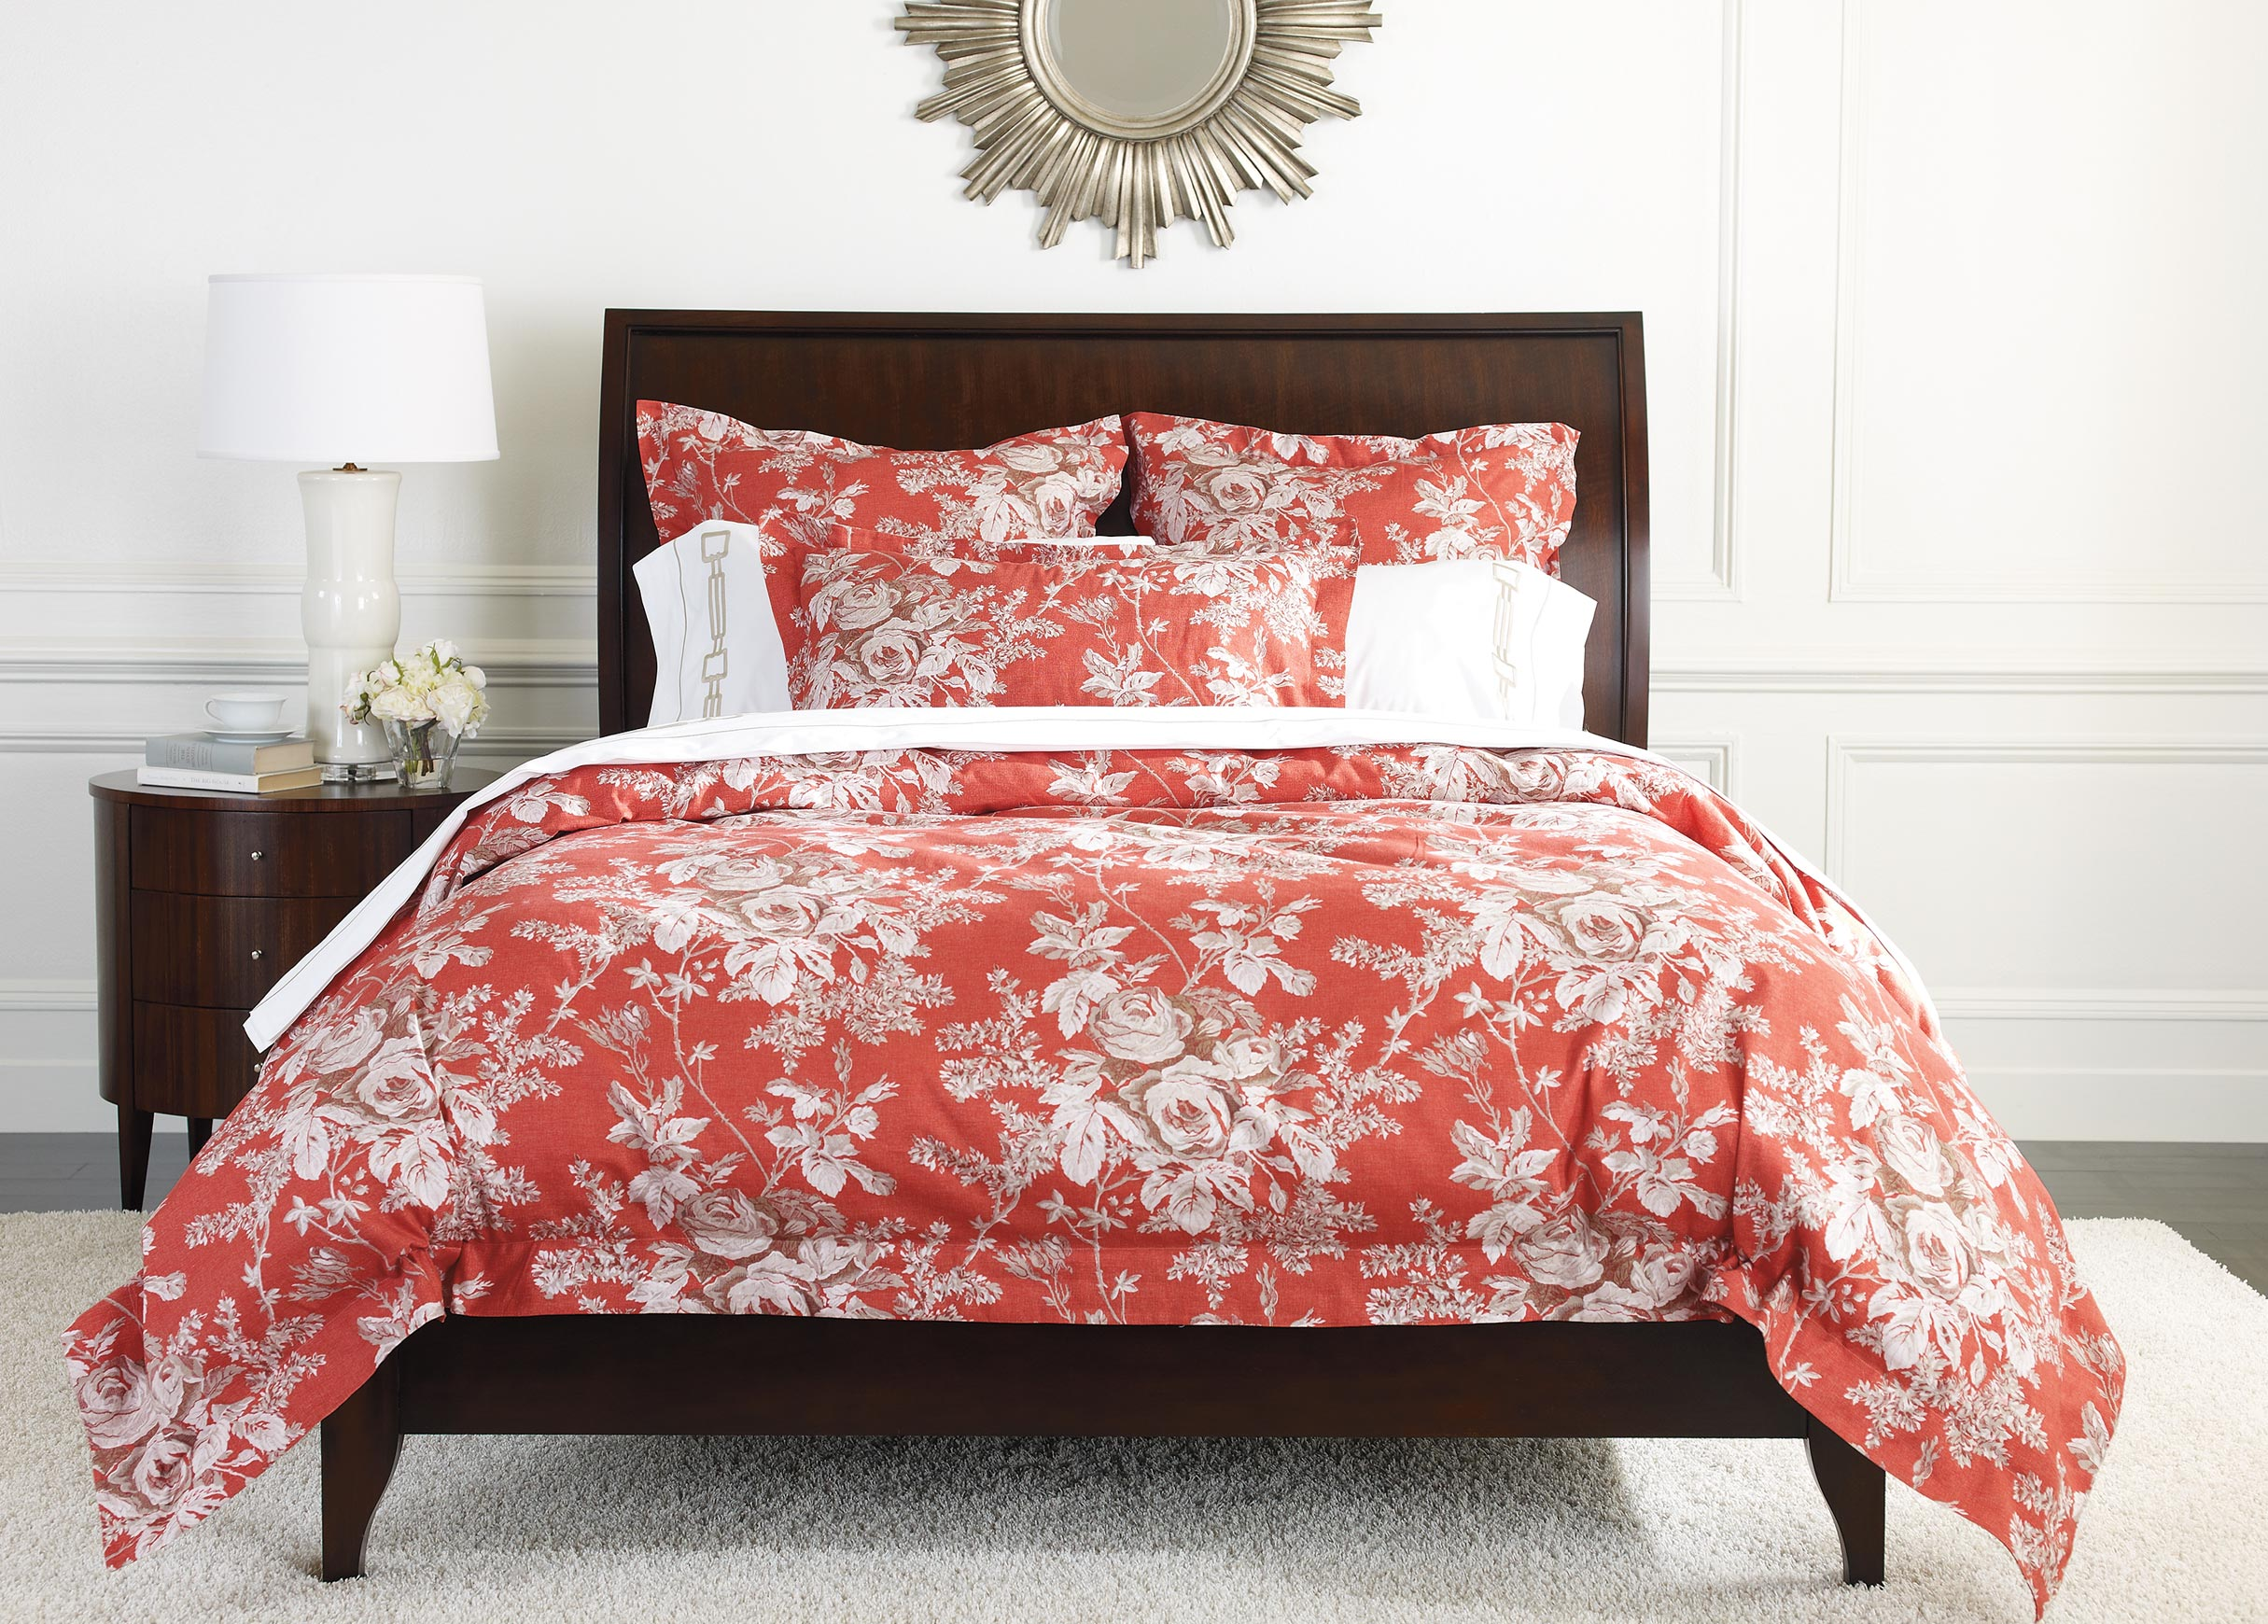 ingrid floral duvet cover and shams  duvet covers - images ingrid floral duvet cover and shams   largegray